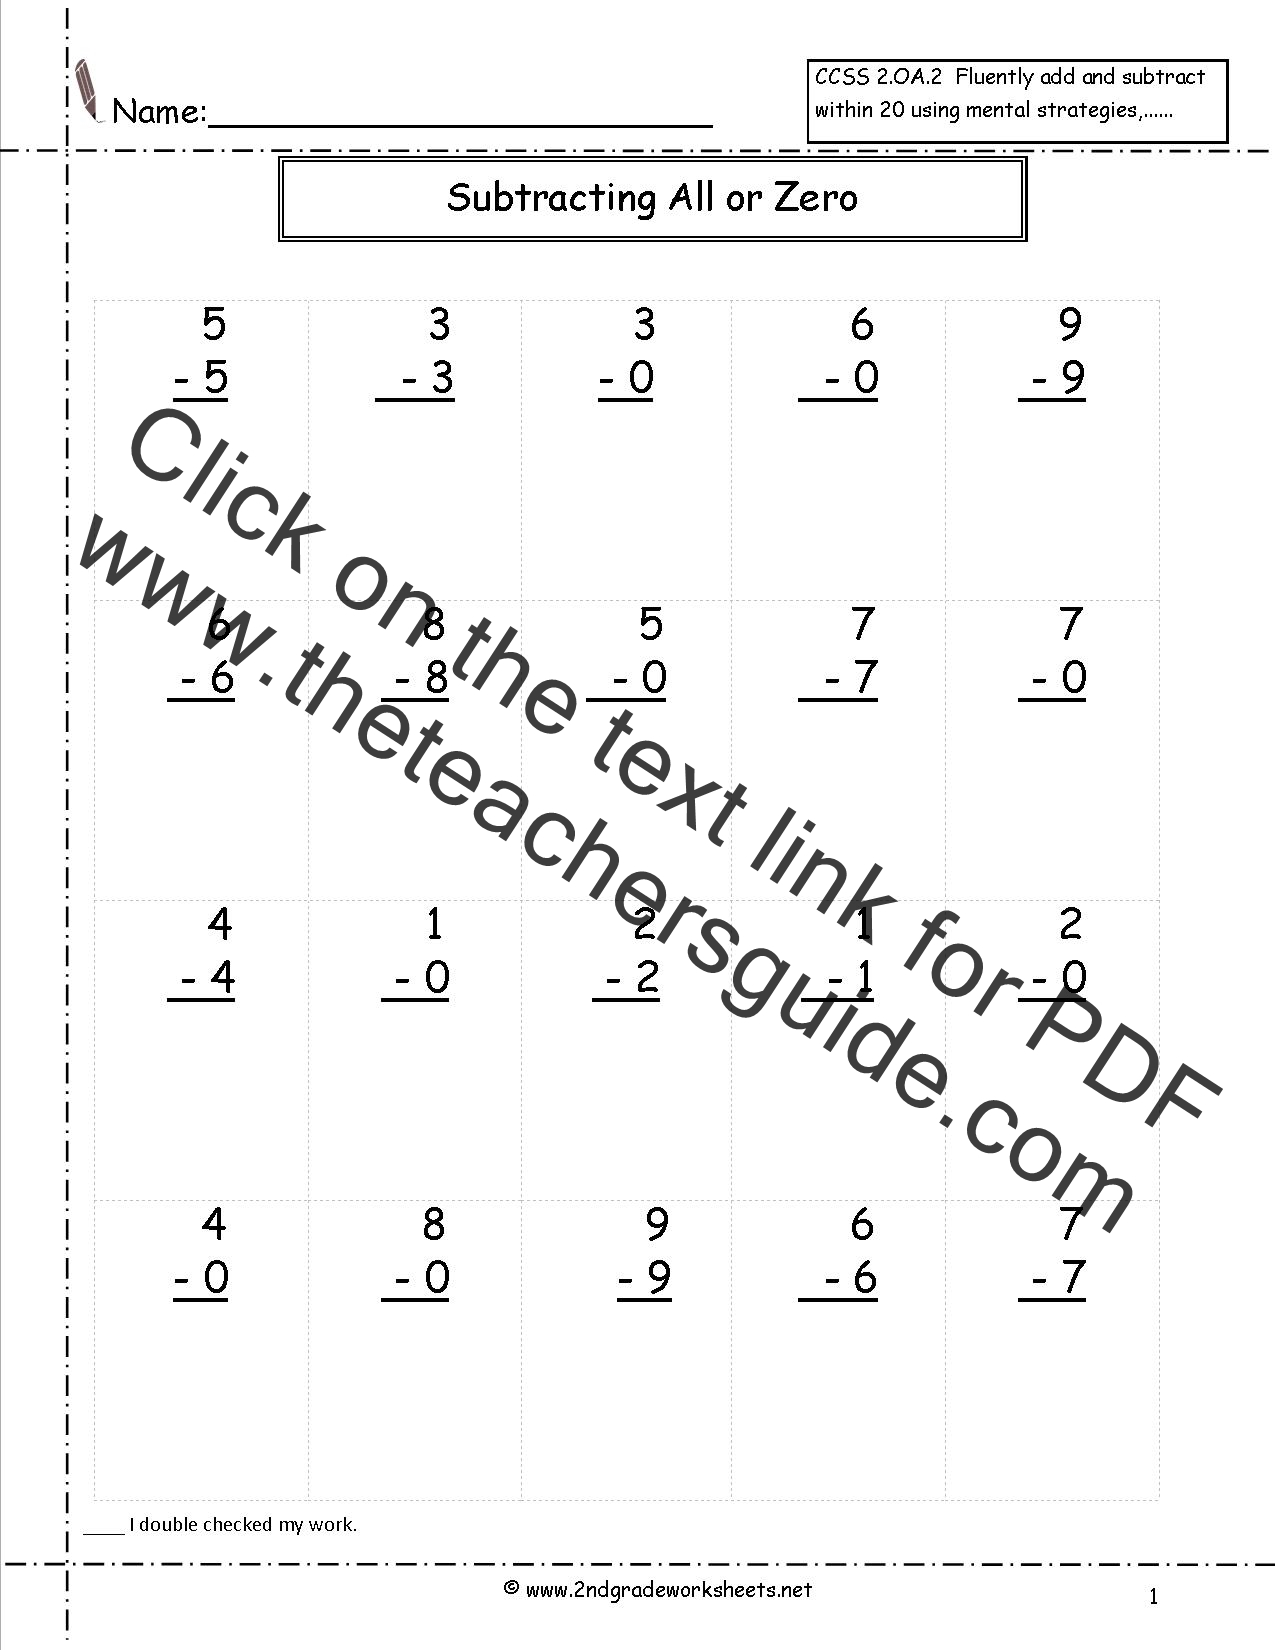 worksheet Subtraction Facts Worksheets single digit subtraction fluency worksheets subtracting zero worksheet